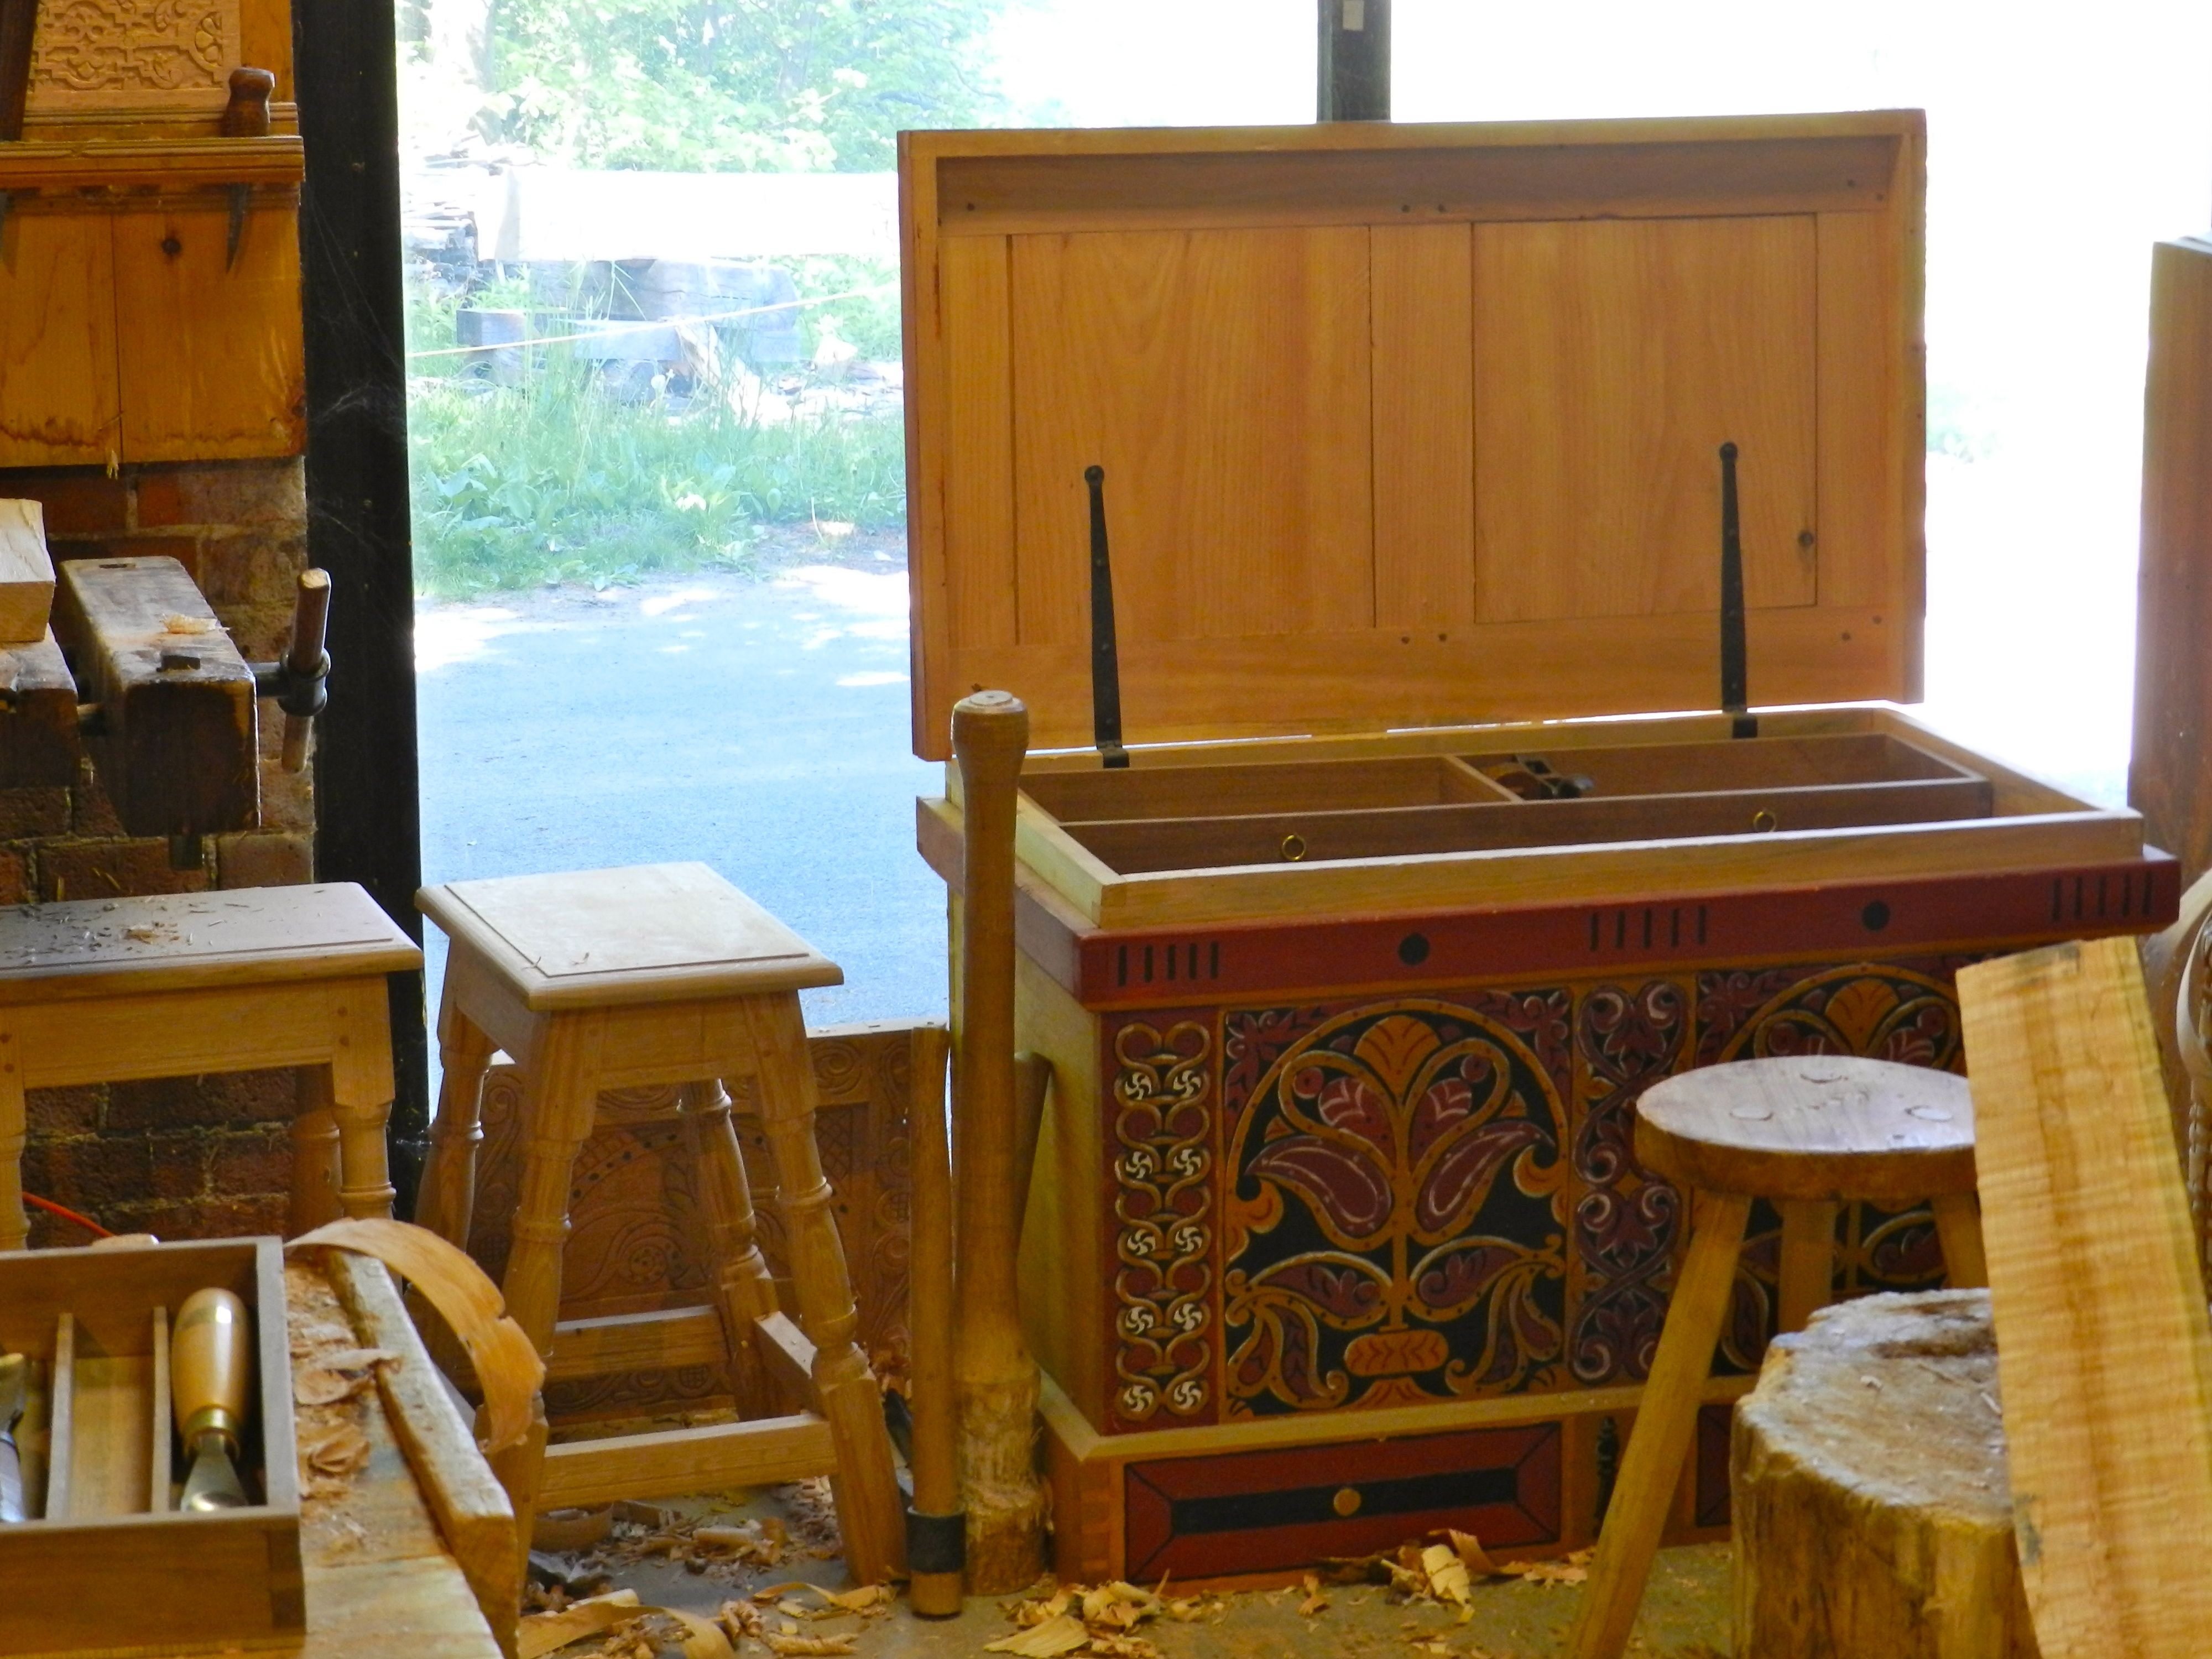 Peter Follansbee S Take On The Anarchist S Toolchest Woodworking Inspiration Tool Chest Tool Storage